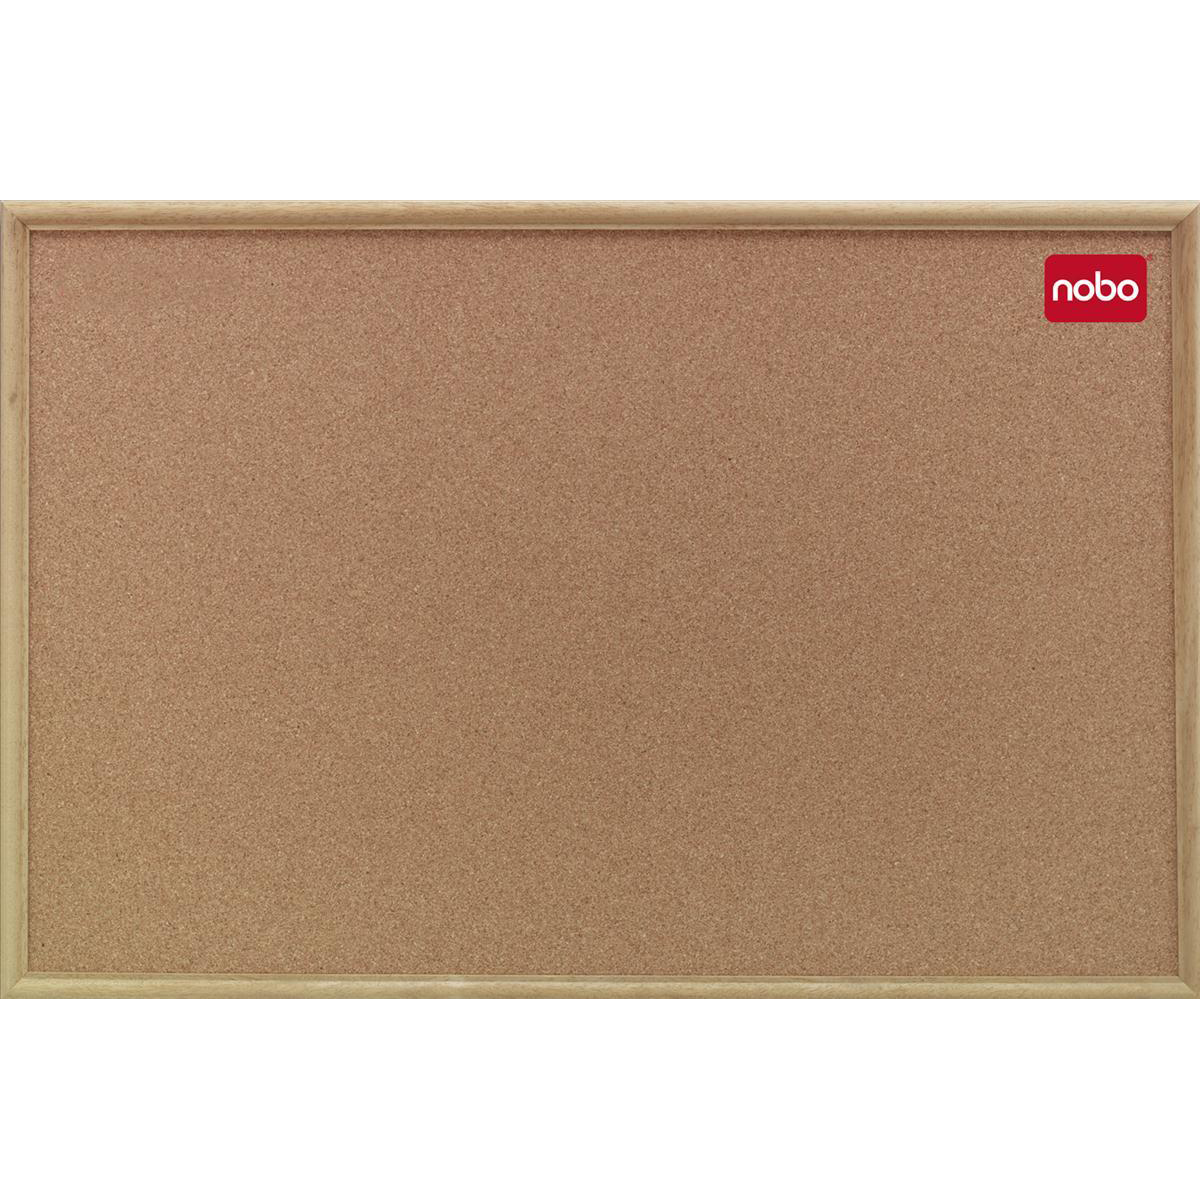 Nobo Classic Office Noticeboard Cork with Natural Oak Finish W1800xH1200mm Ref 37639005